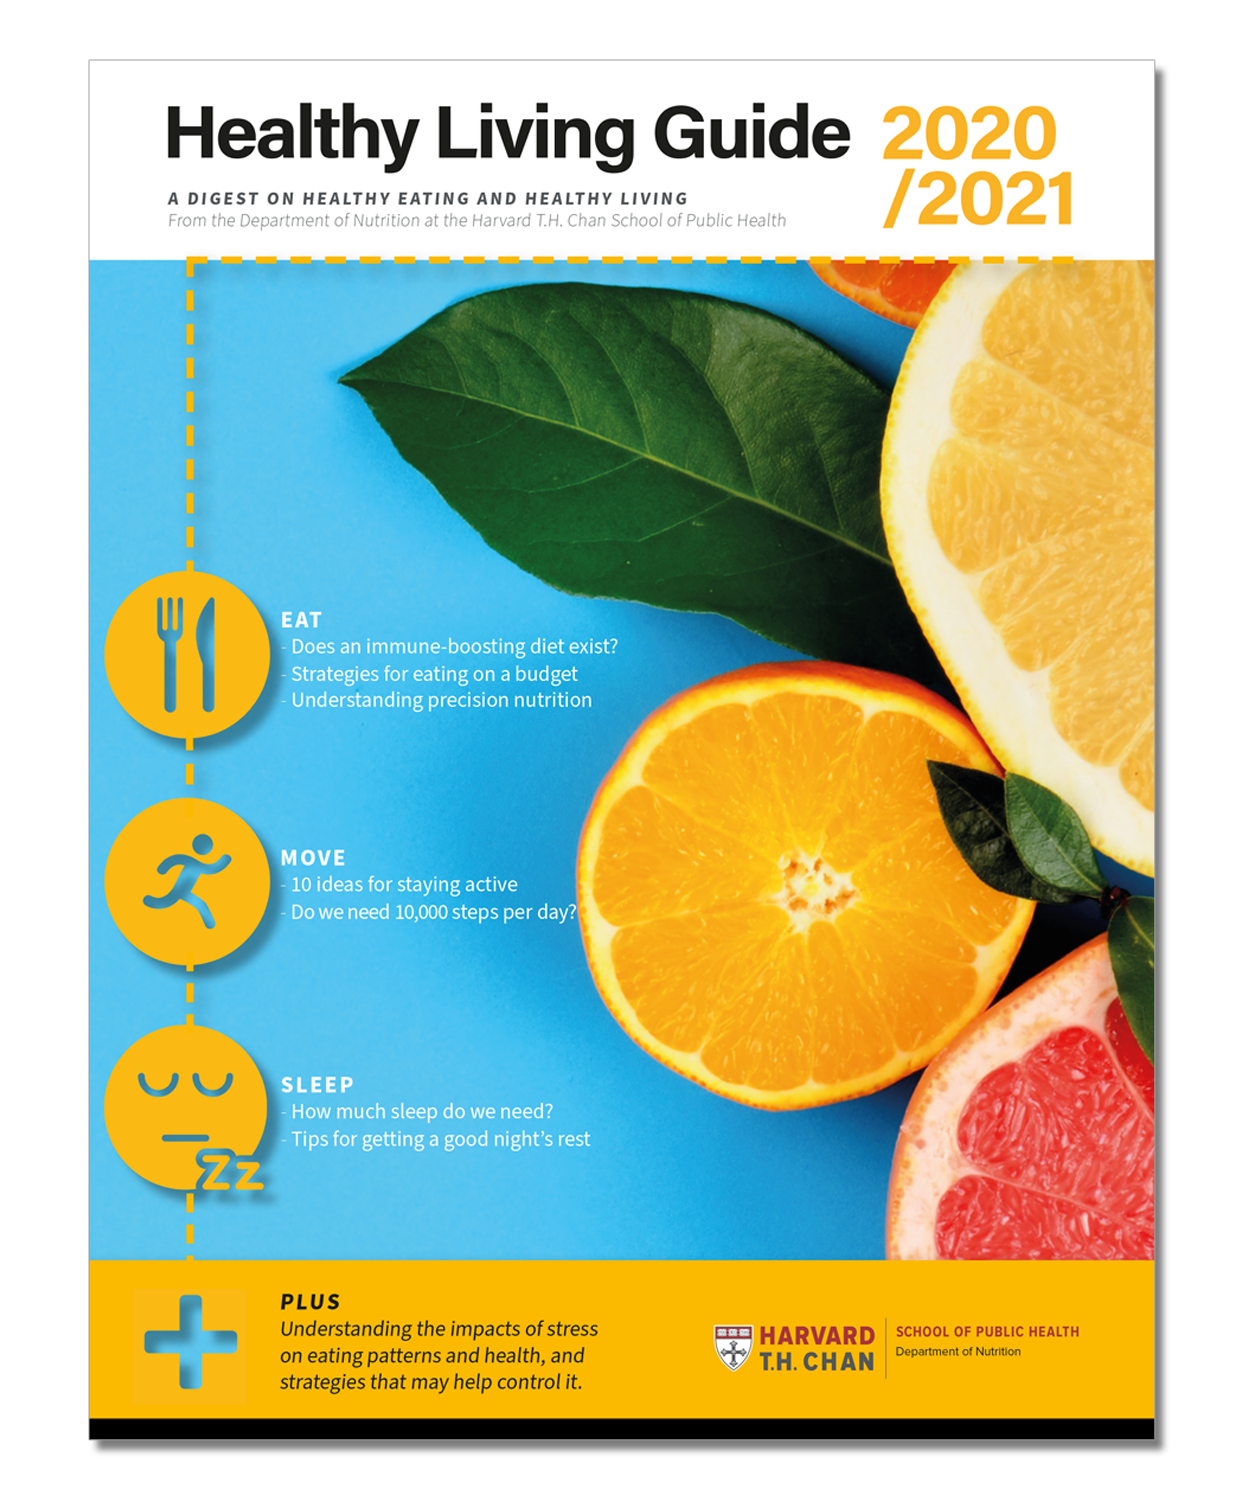 Cover image of the Healthy Living Guide downloadable PDF